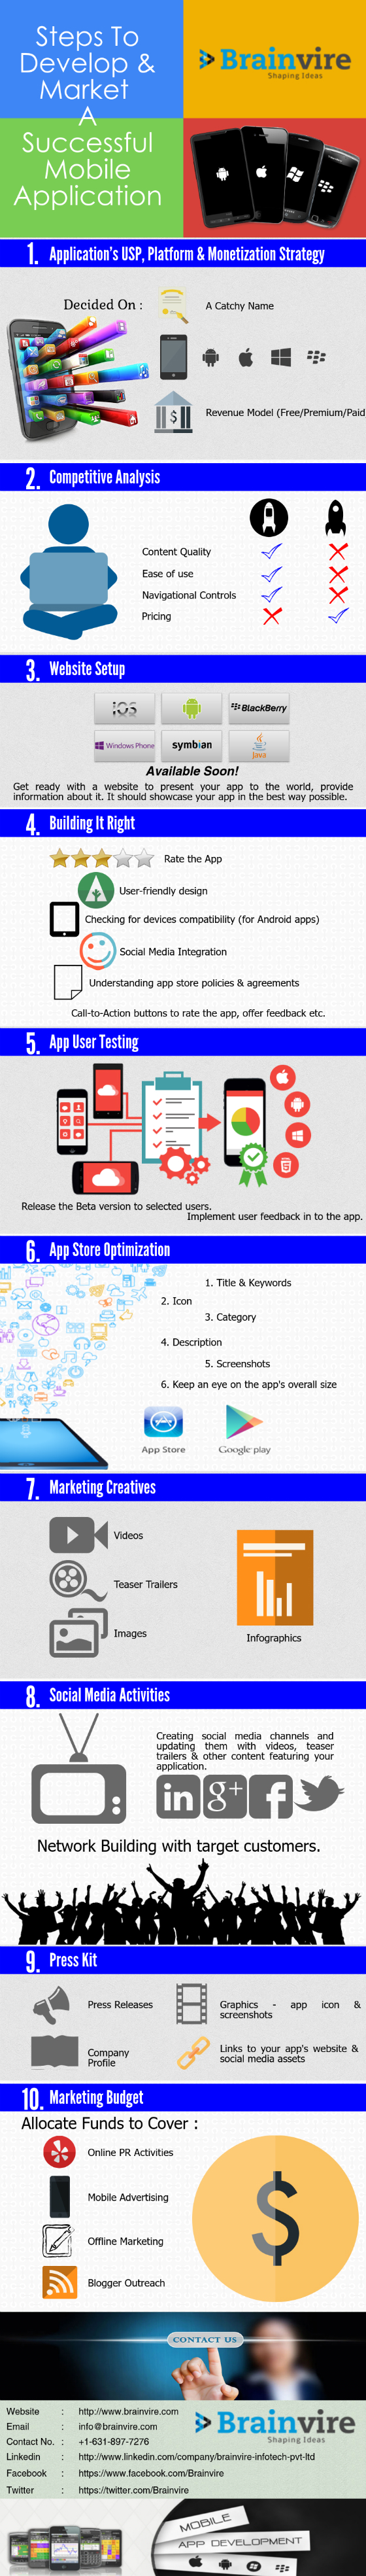 Steps to develop & Market A Successful Mobile Application